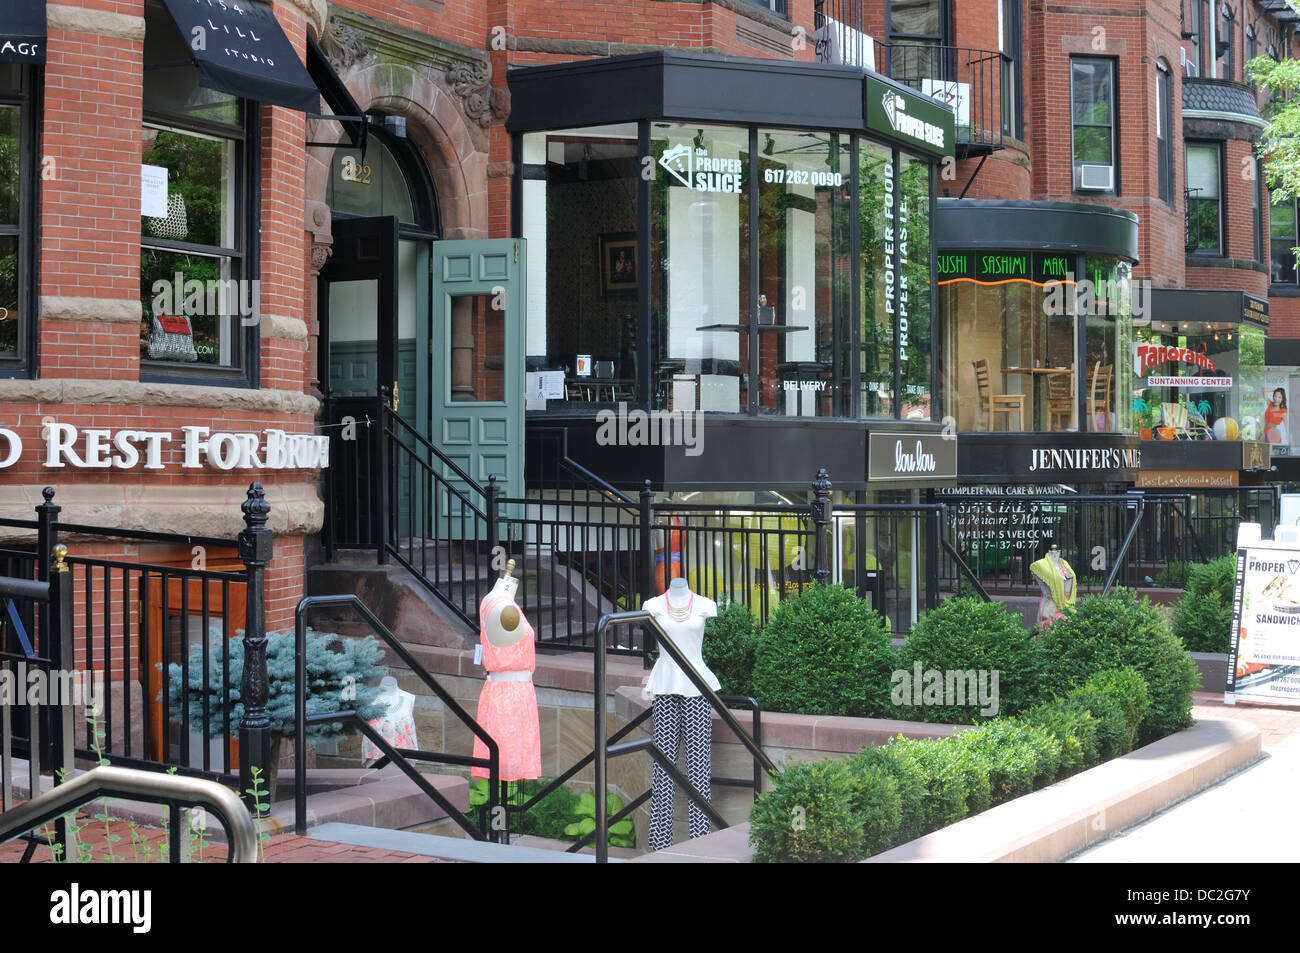 The Back Bay is one of the most appealing neighborhoods in America. It's also a protected historic district.